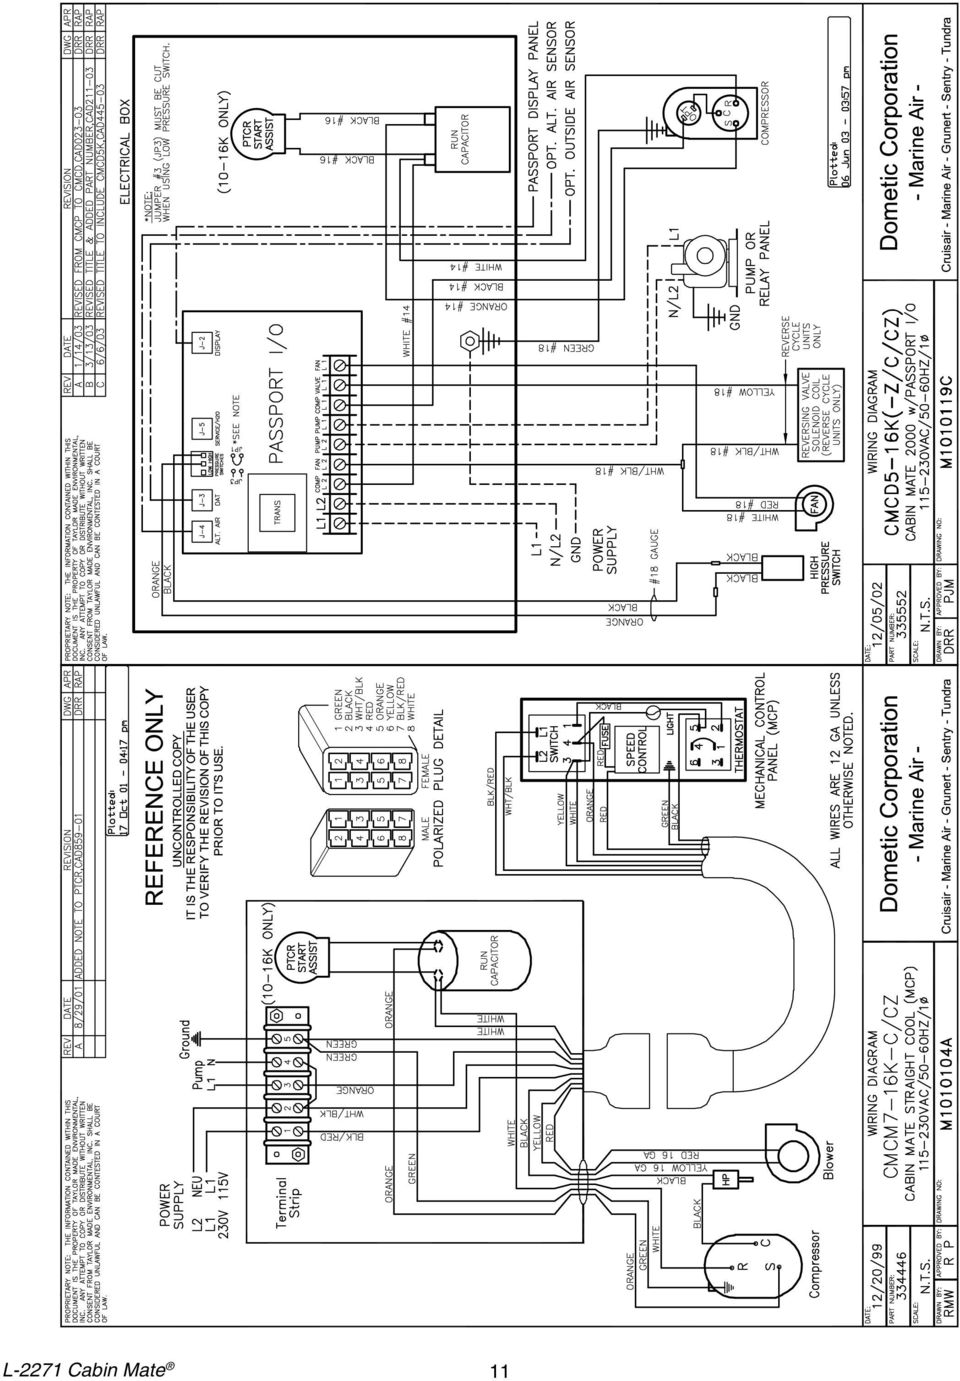 waeco cf 50 wiring diagram free download  u2022 oasis